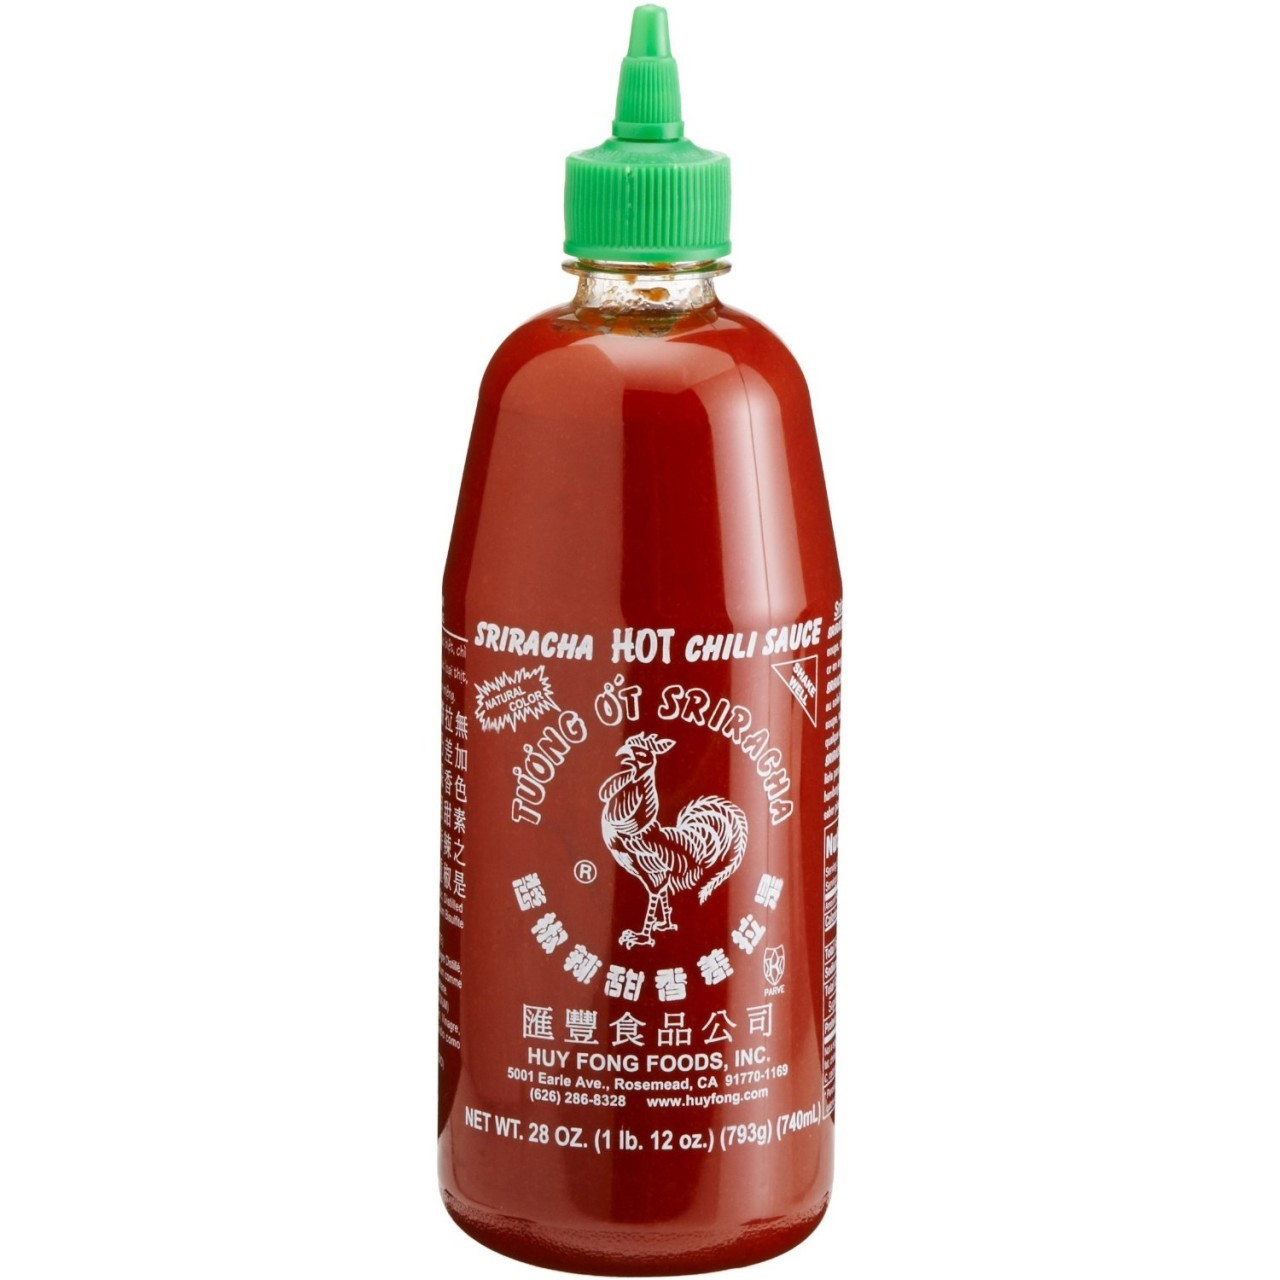 Share your asian hot sause remarkable, rather